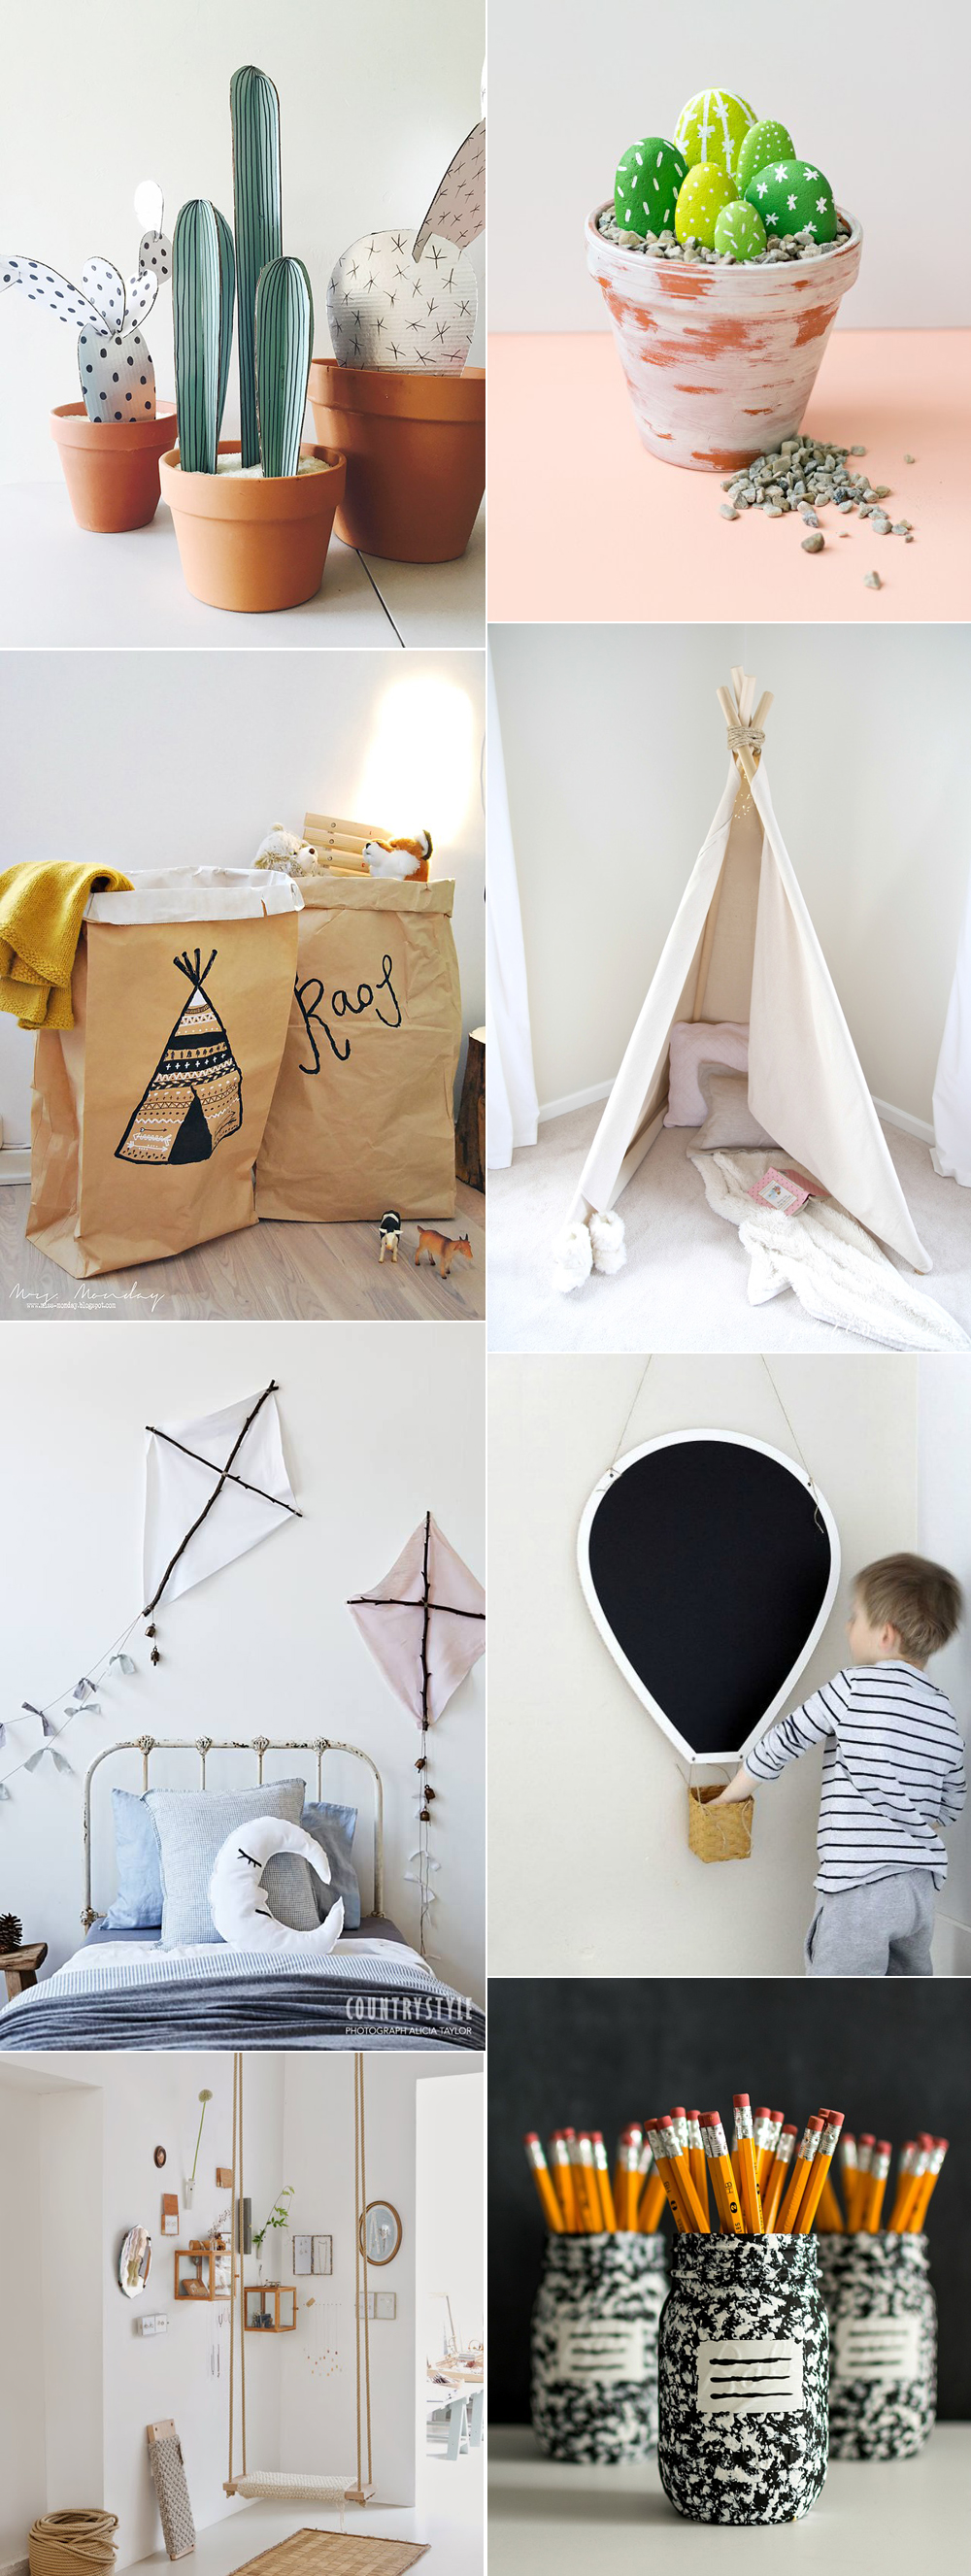 We love inspiration kinderzimmer we love handmade - Inspiration kinderzimmer ...